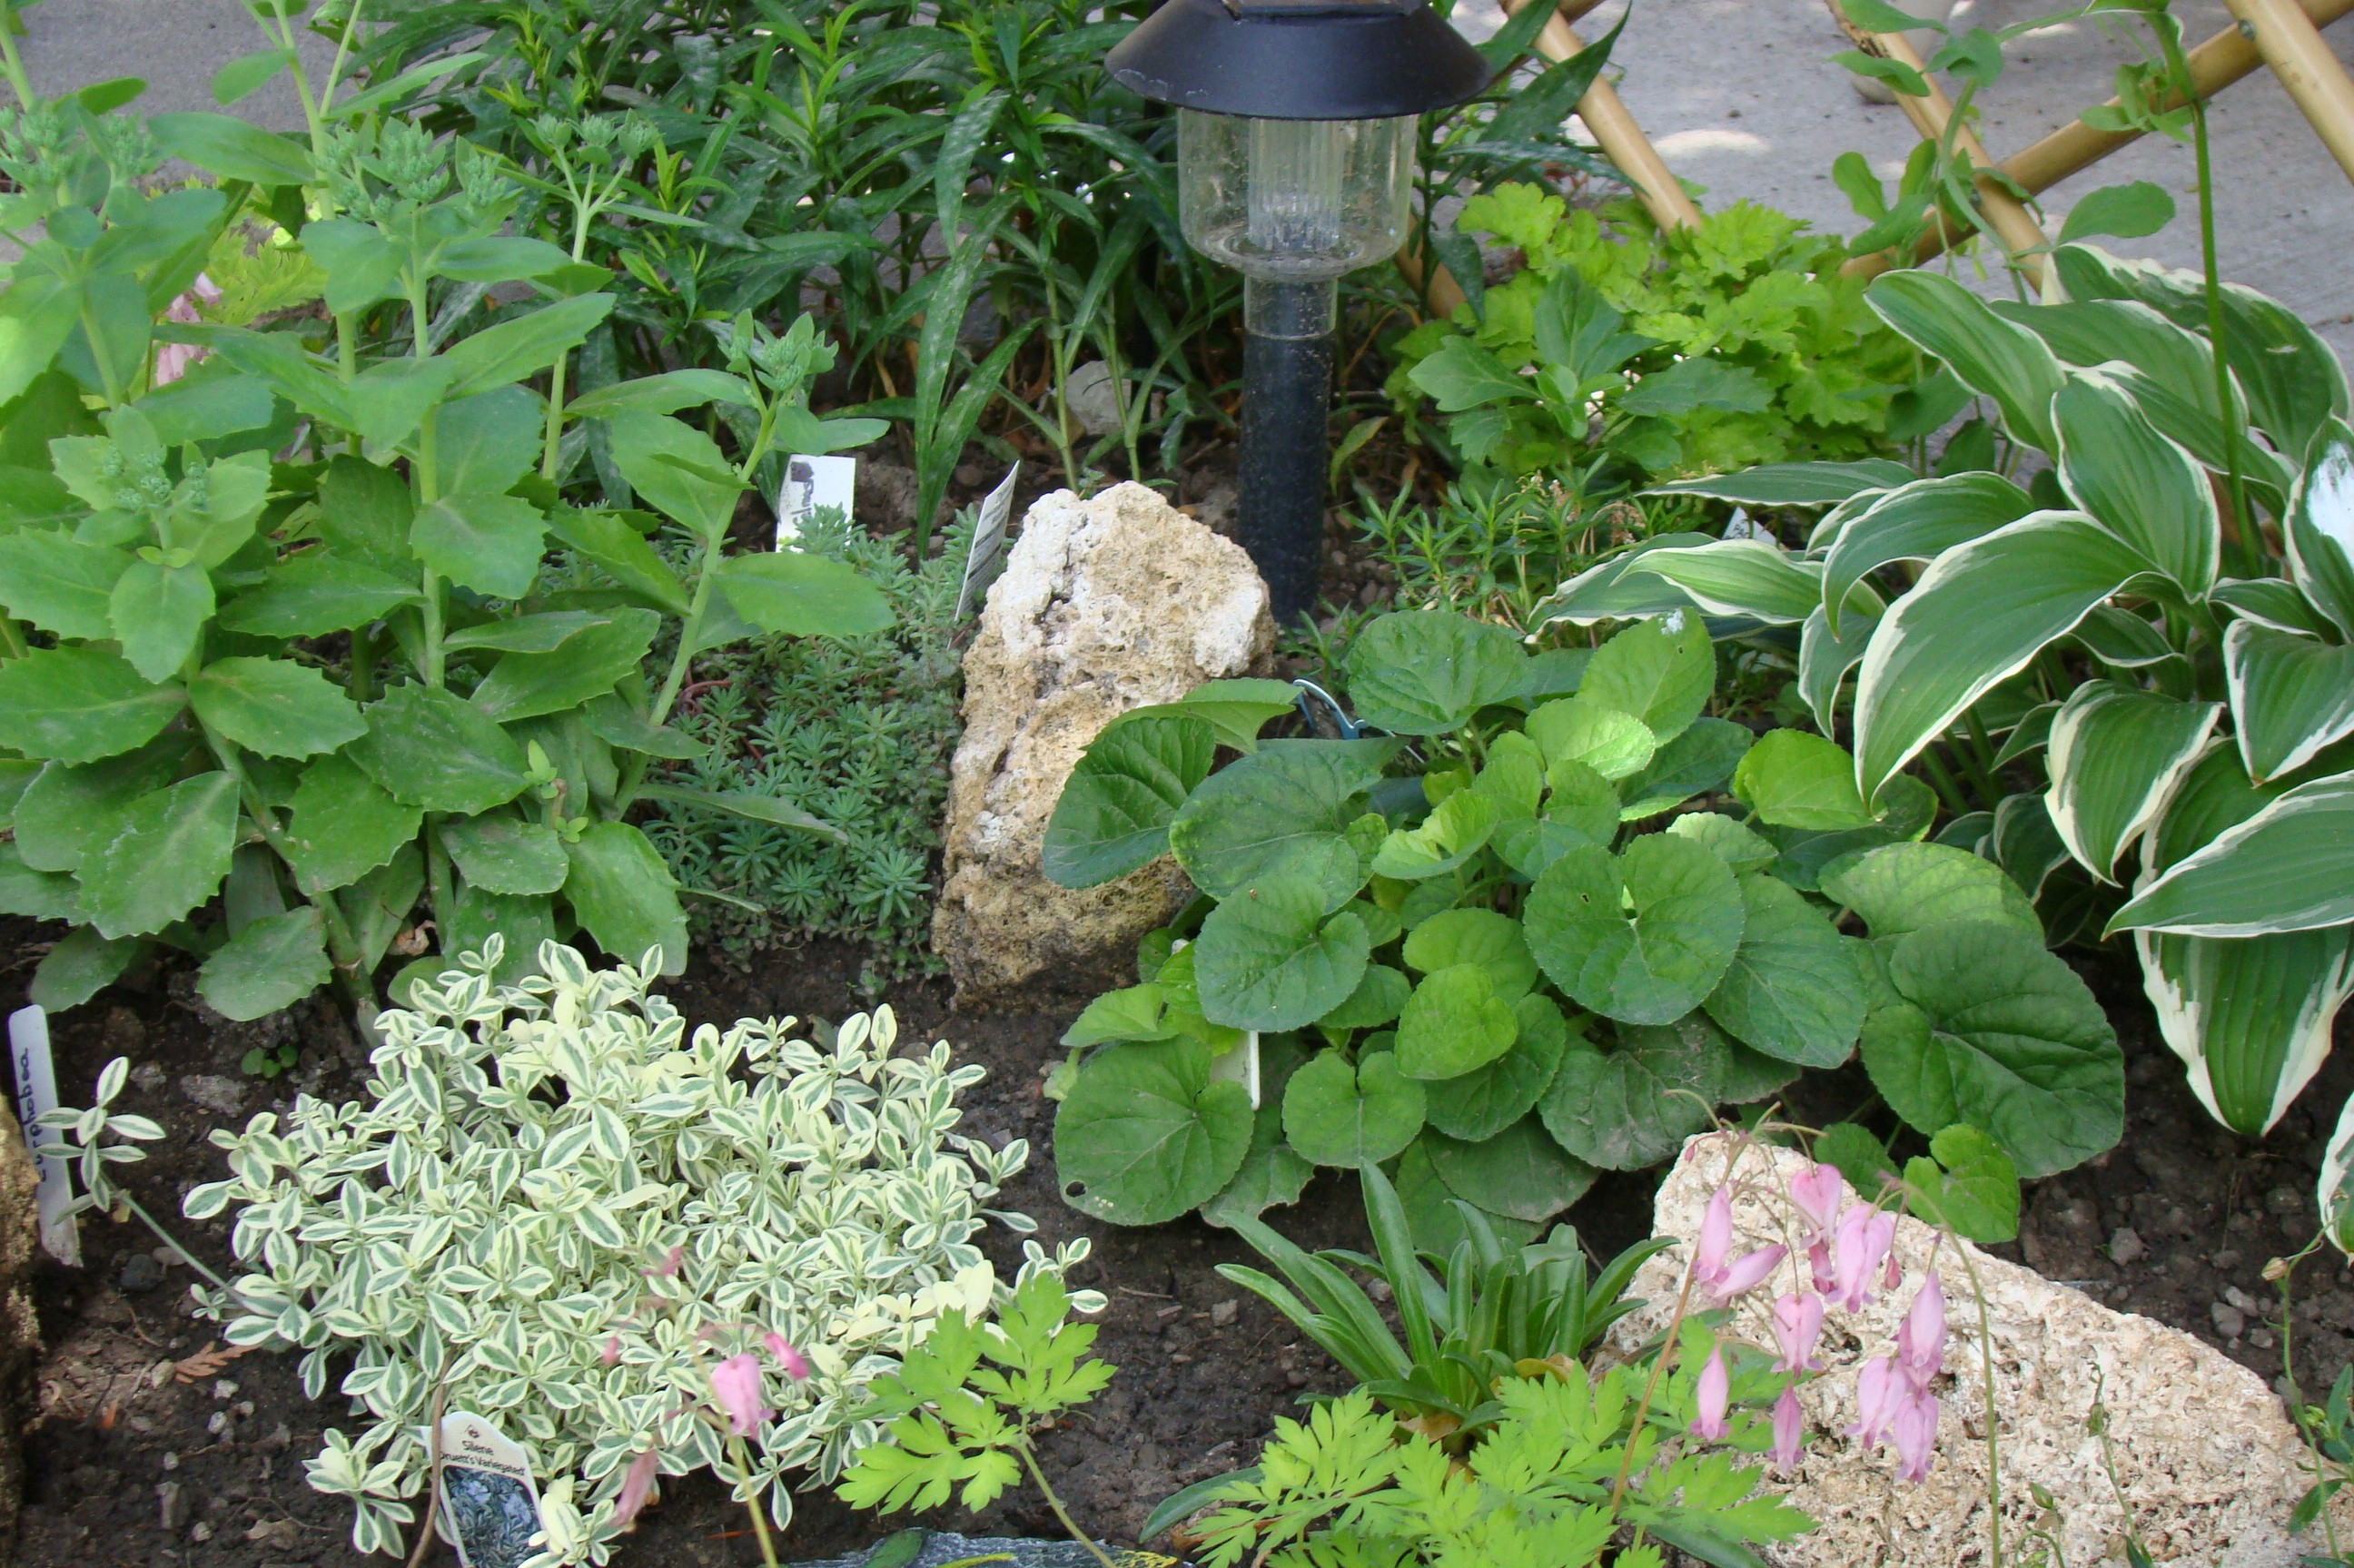 Landscaping Rocks Names : Garden rocks with names http